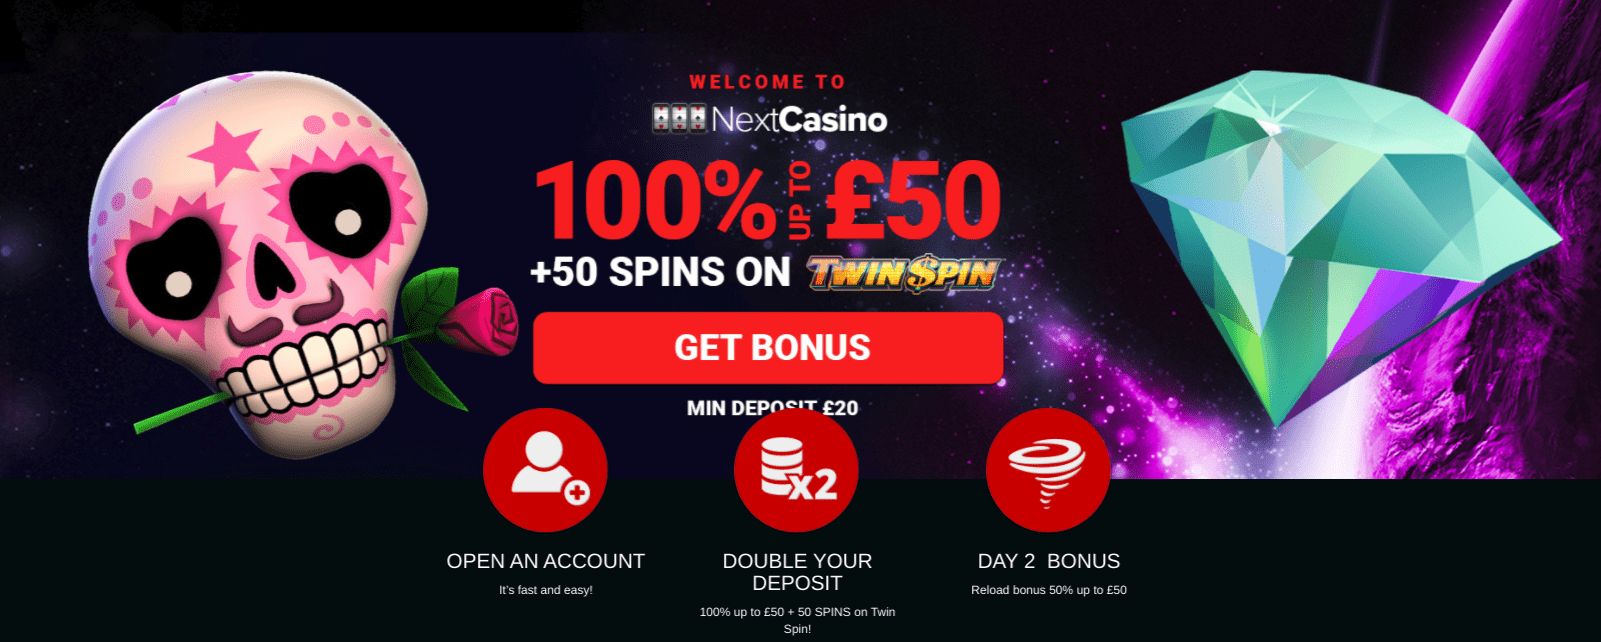 next casino welcome offer